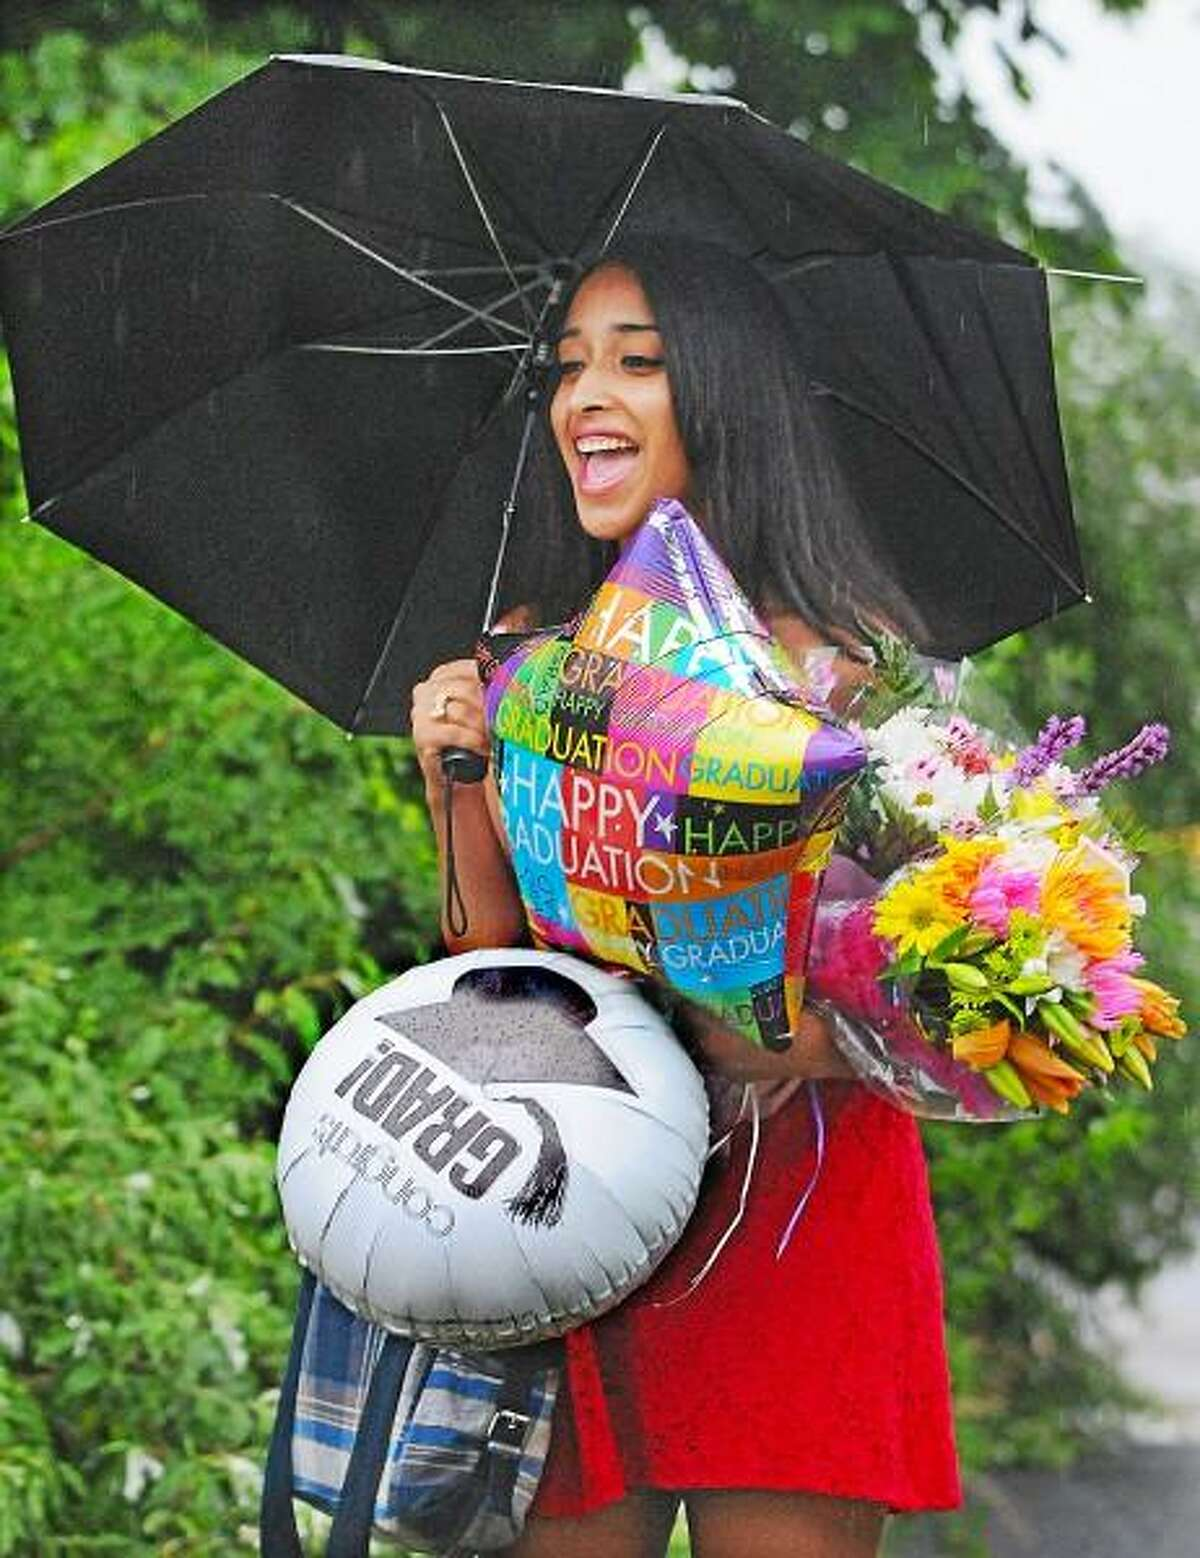 Catherine Avalone/The Middletown Press Soleybe Diaz, one of 82 graduates in the class of 2013 received balloons and bouqets of flowers from family members following graduation Tuesday evening at Portland High School. School administration decided Monday morning to move commencement indoors.